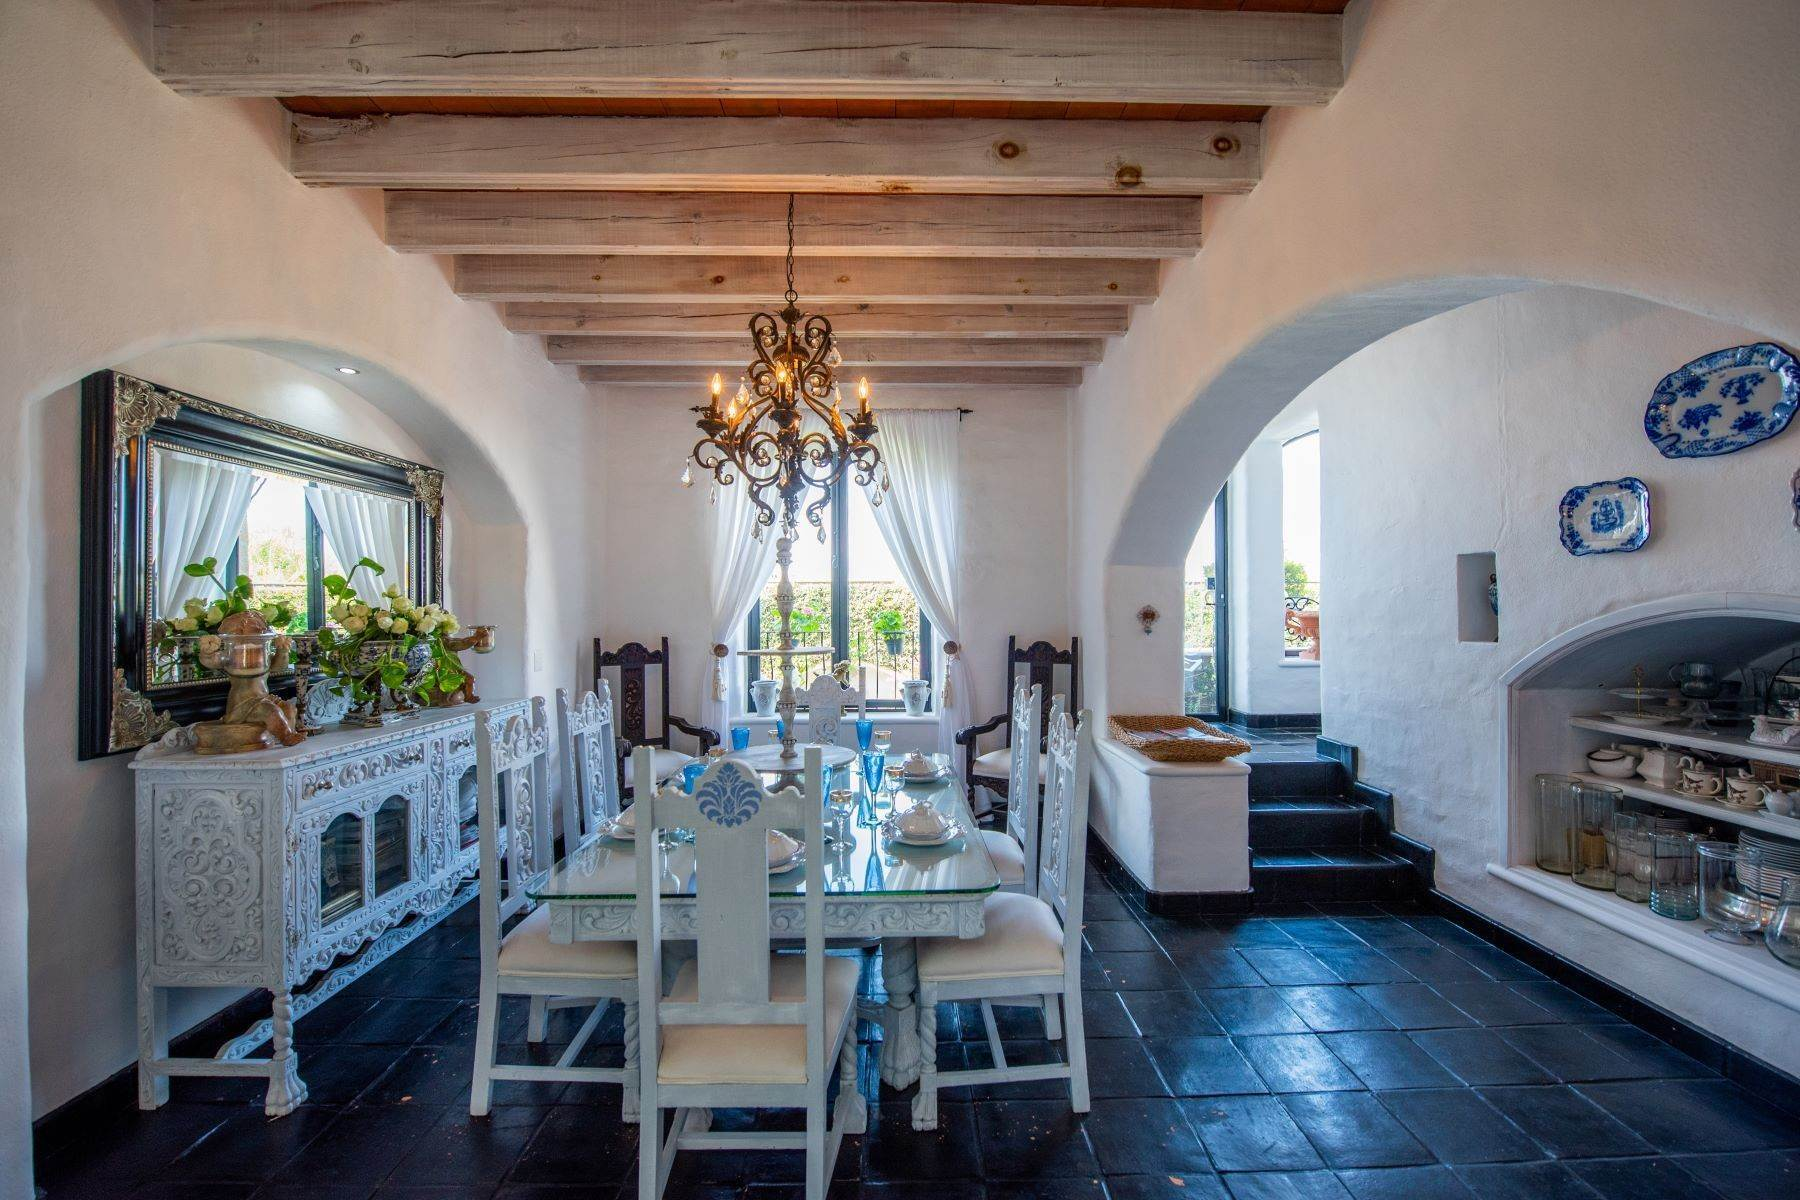 29. Single Family Homes for Sale at Casa Mi Besito Atascadero, San Miguel De Allende, Guanajuato Mexico